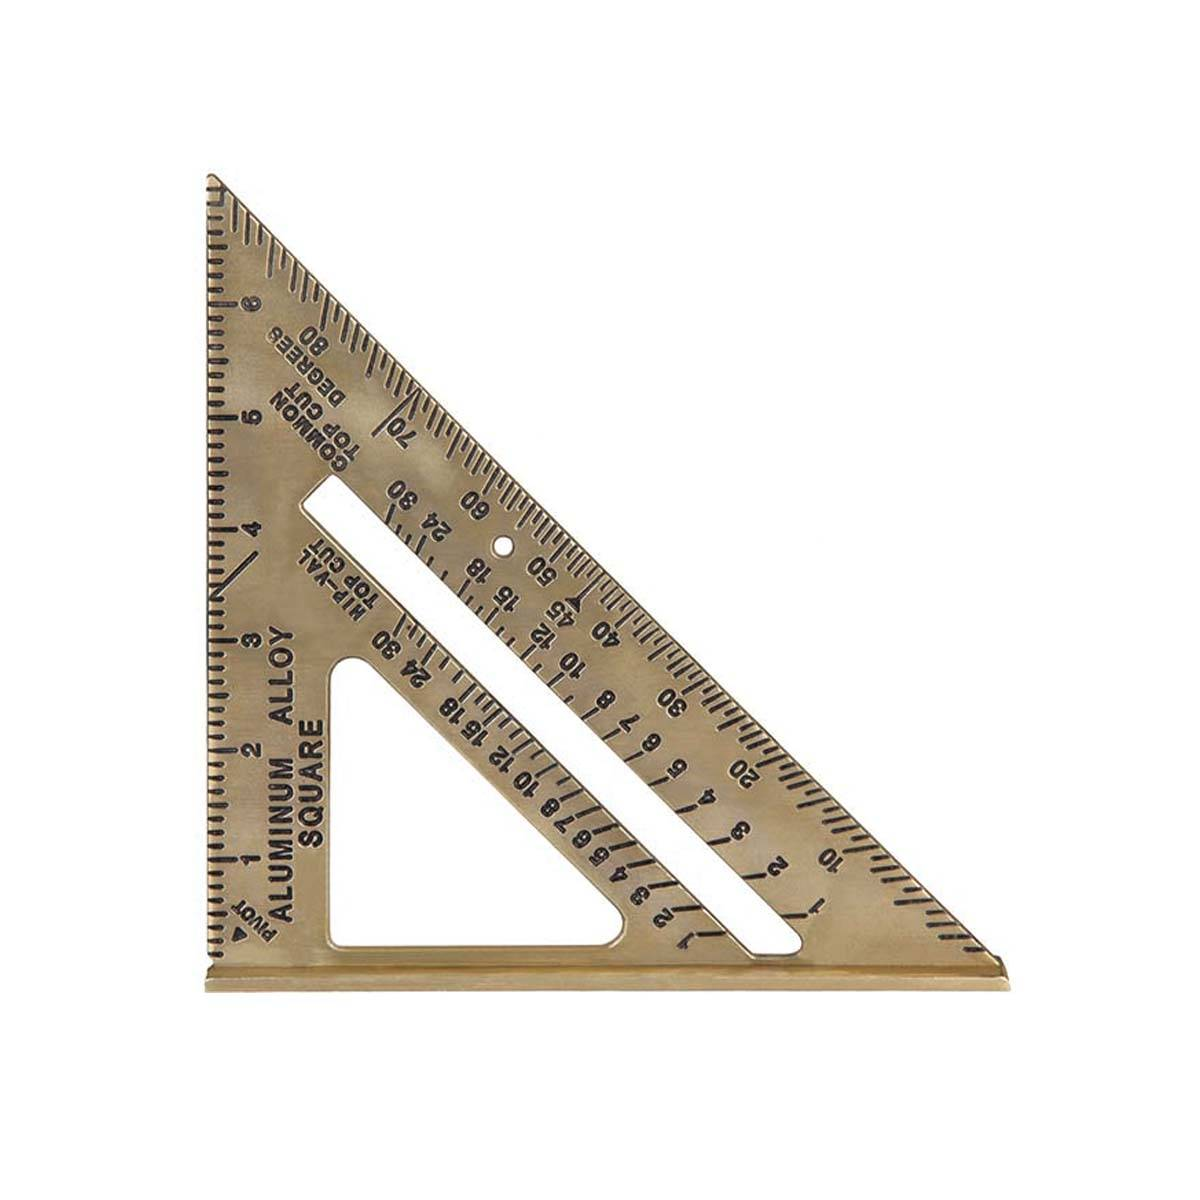 China Factory for Bridge Level Adjustable -